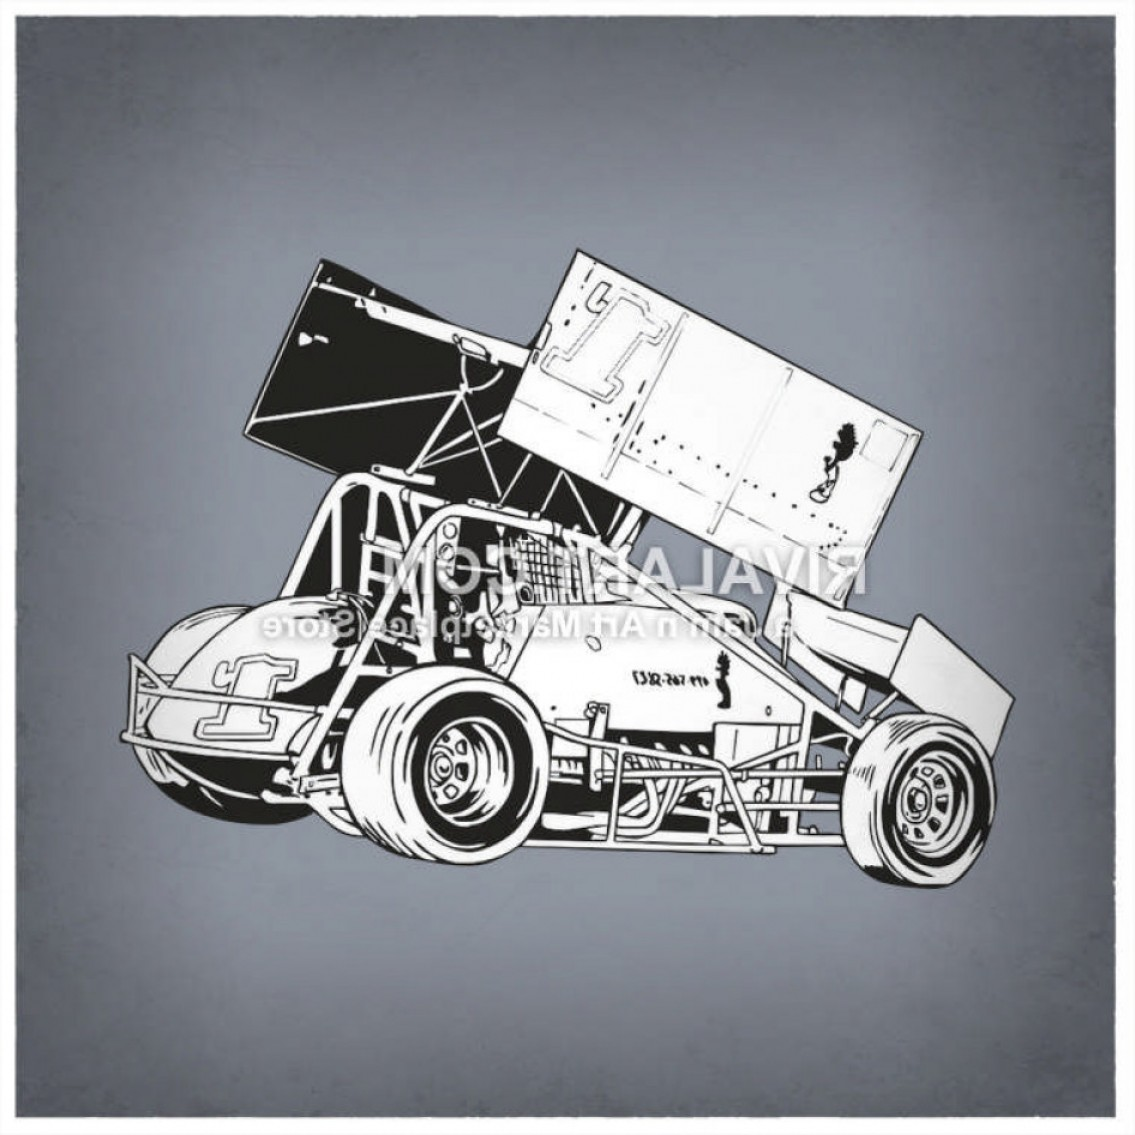 Sprint Car Vector: Vector Clipart Of Black White Sprint Car Race Racing Graphic In Vector Format